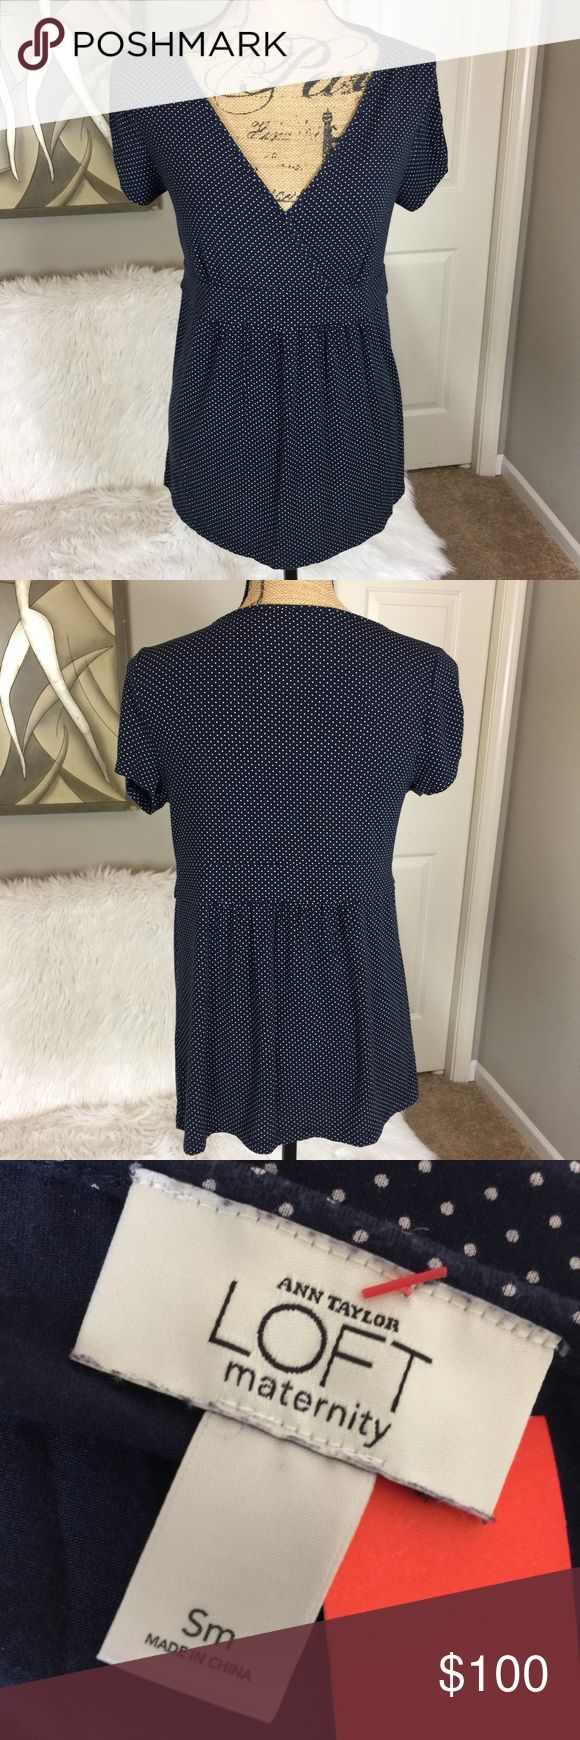 "•• LOFT Ann Taylor • Maternity Polka Dot Blouse Super soft women's maternity blouse in size small. Because of its stretch fit it could accommodate a range of sizes depending on how you want it to fit. I typically wear a medium or large and it fit me perfectly. Color is a fun blue and white polka dot pattern. Overall item is in good used condition.  Measurements (Approx) Pit to Pit: 16"" Length: 24"" Sleeve: 8""  Material Makeup: 93% Rayon 7% Spandex  Comes from a pet free smoke free home. LOFT…"